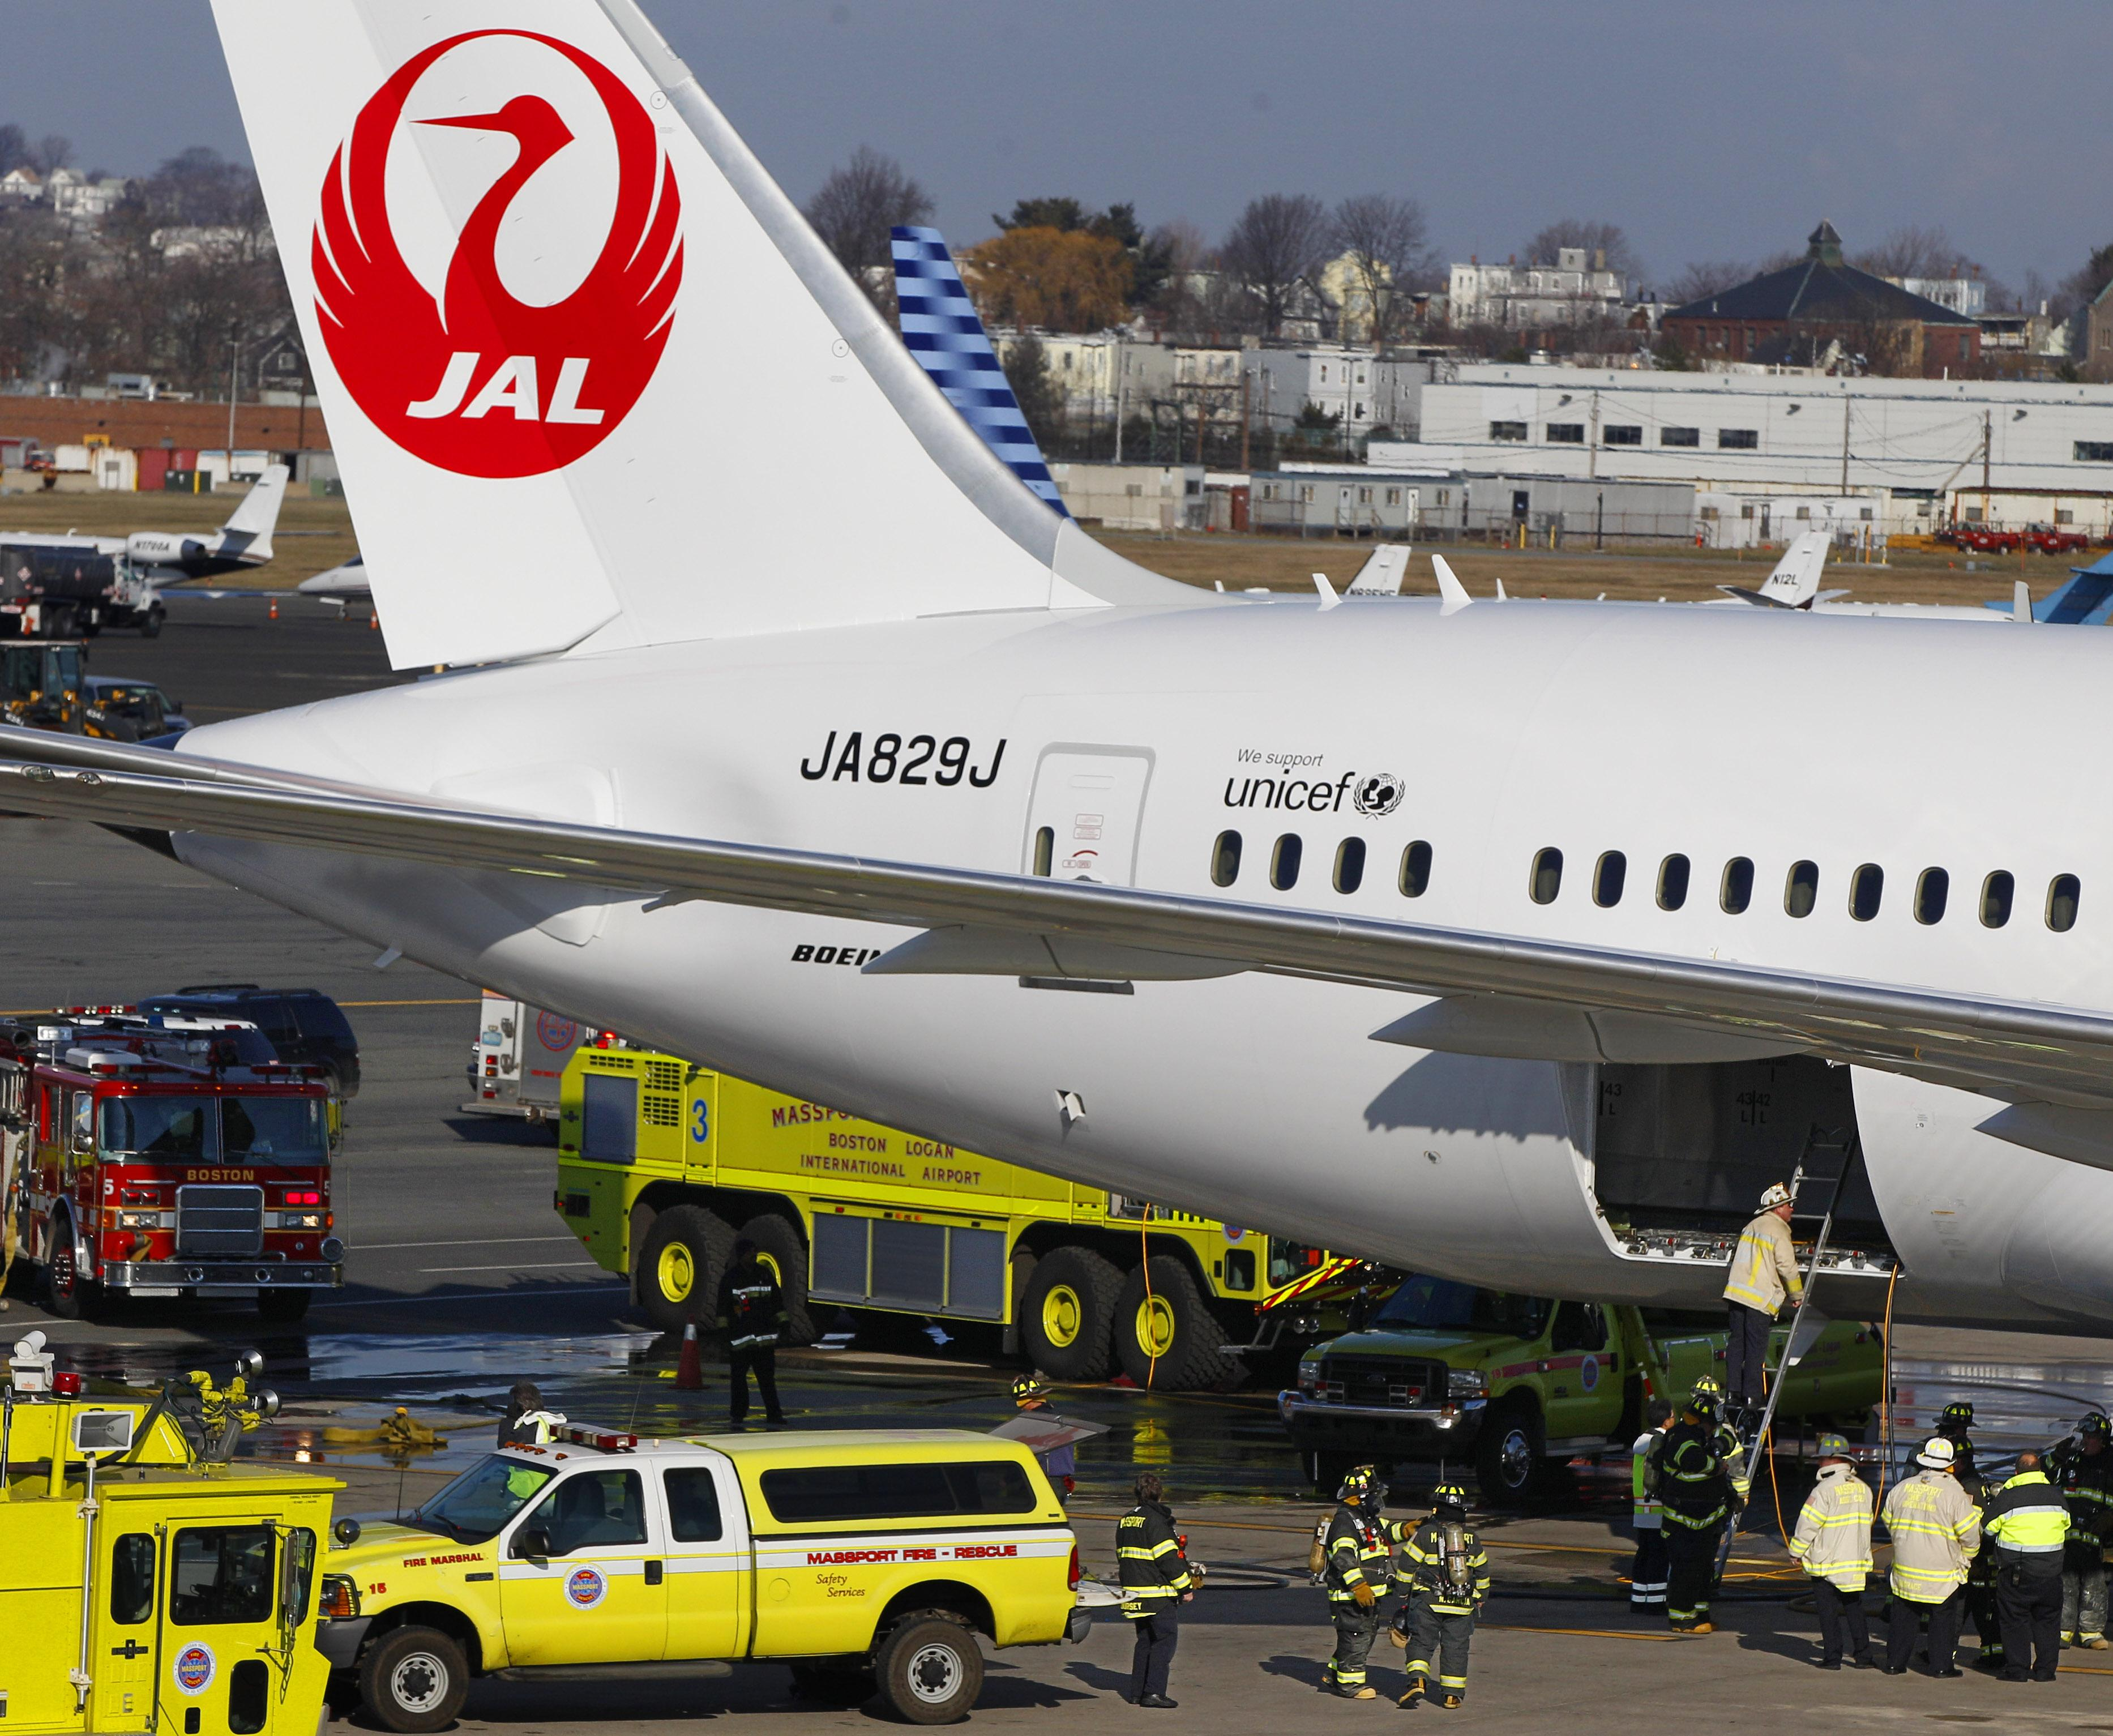 Baby on board? Japan Airlines allowing travelers to see where infants